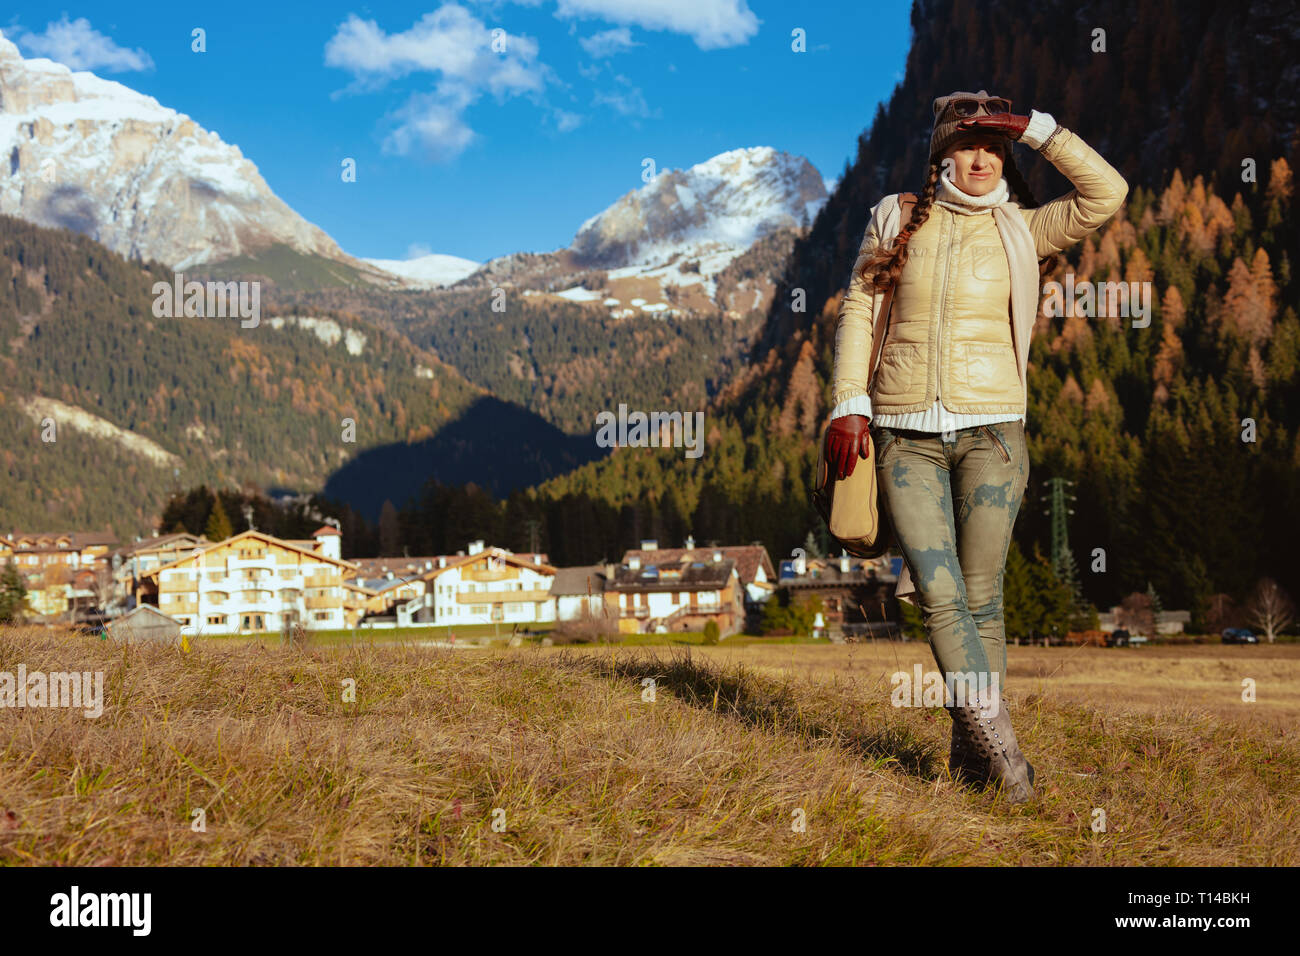 fit woman hiker in hiking gear with bag in Alto Adige, Italy looking into the distance. - Stock Image